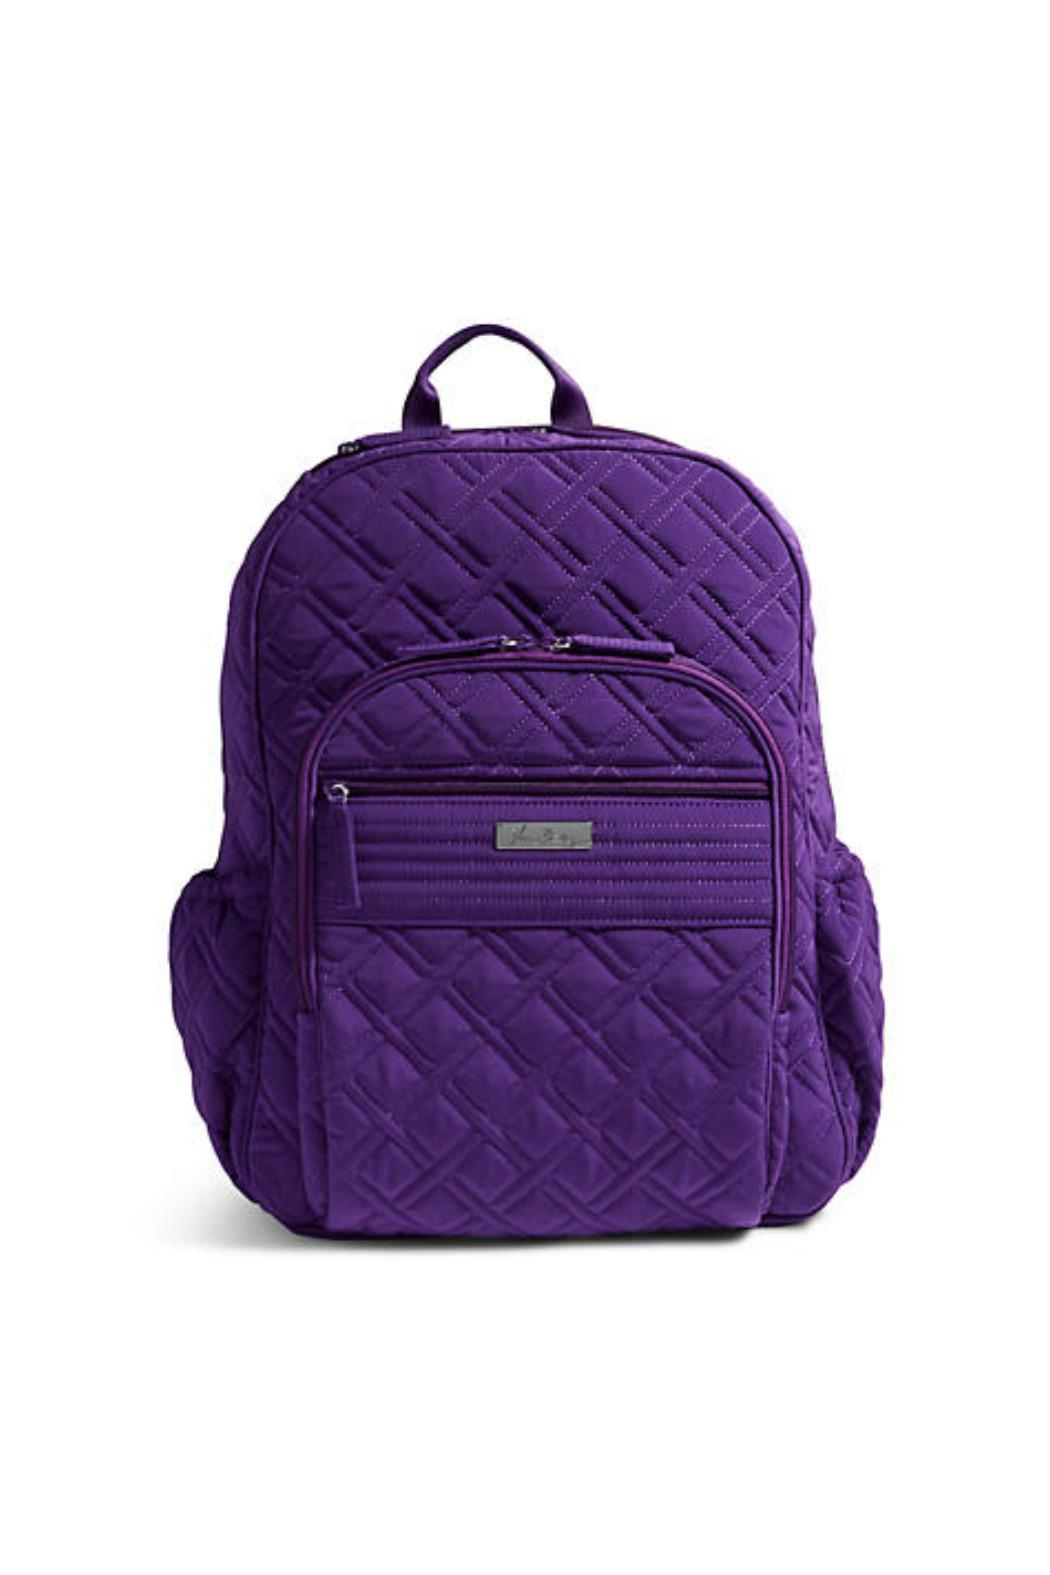 Vera Bradley Elderberry Backpack